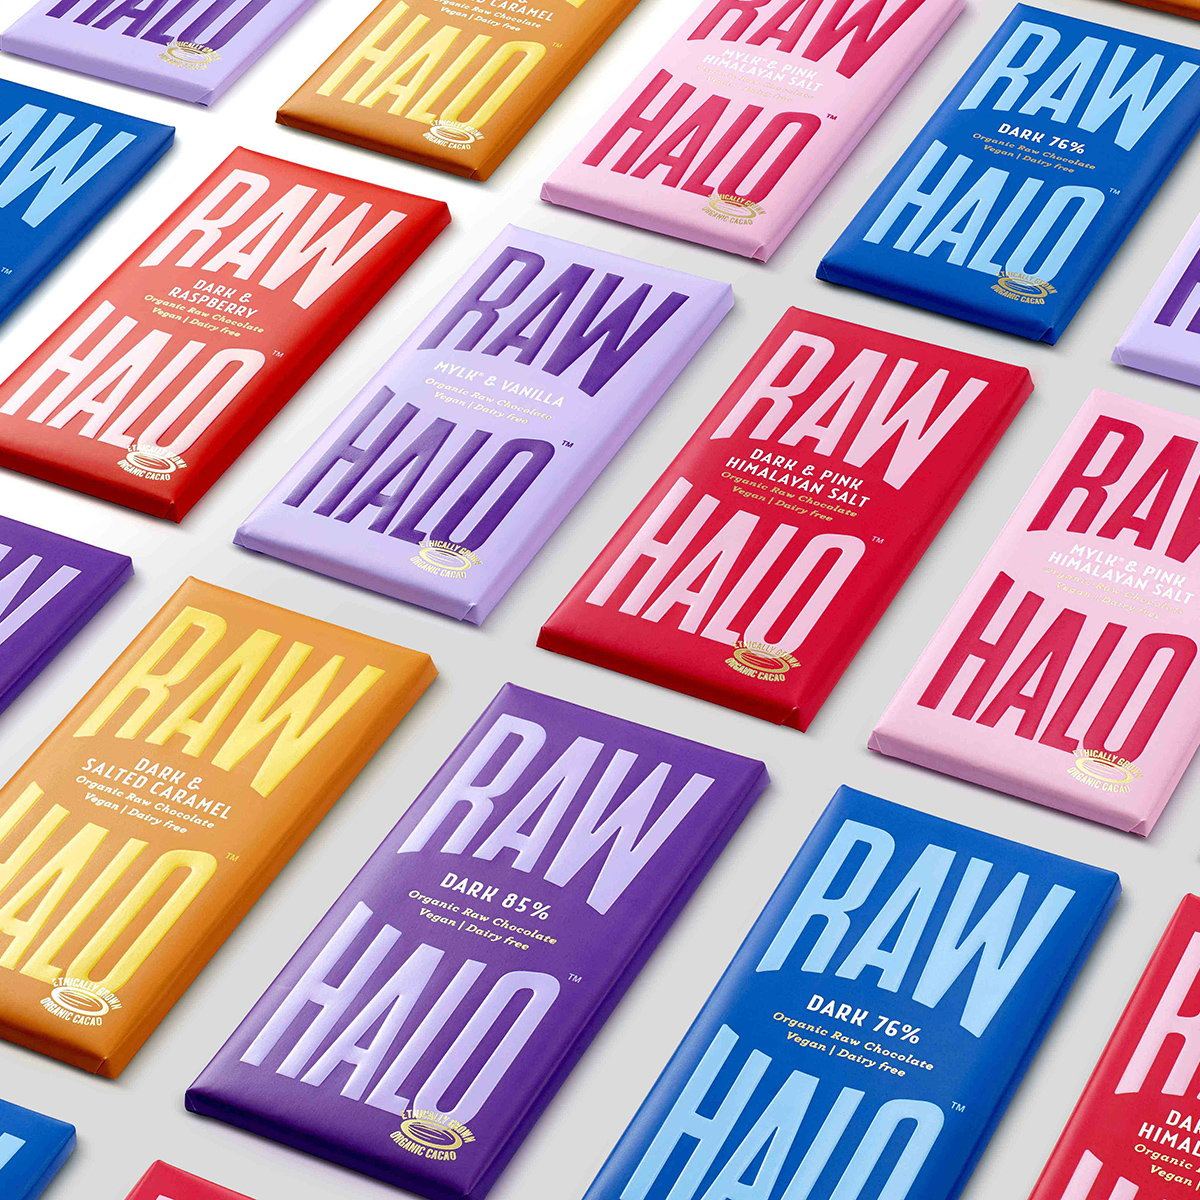 B&B Studio Designs New Brand Identity for Raw Halo